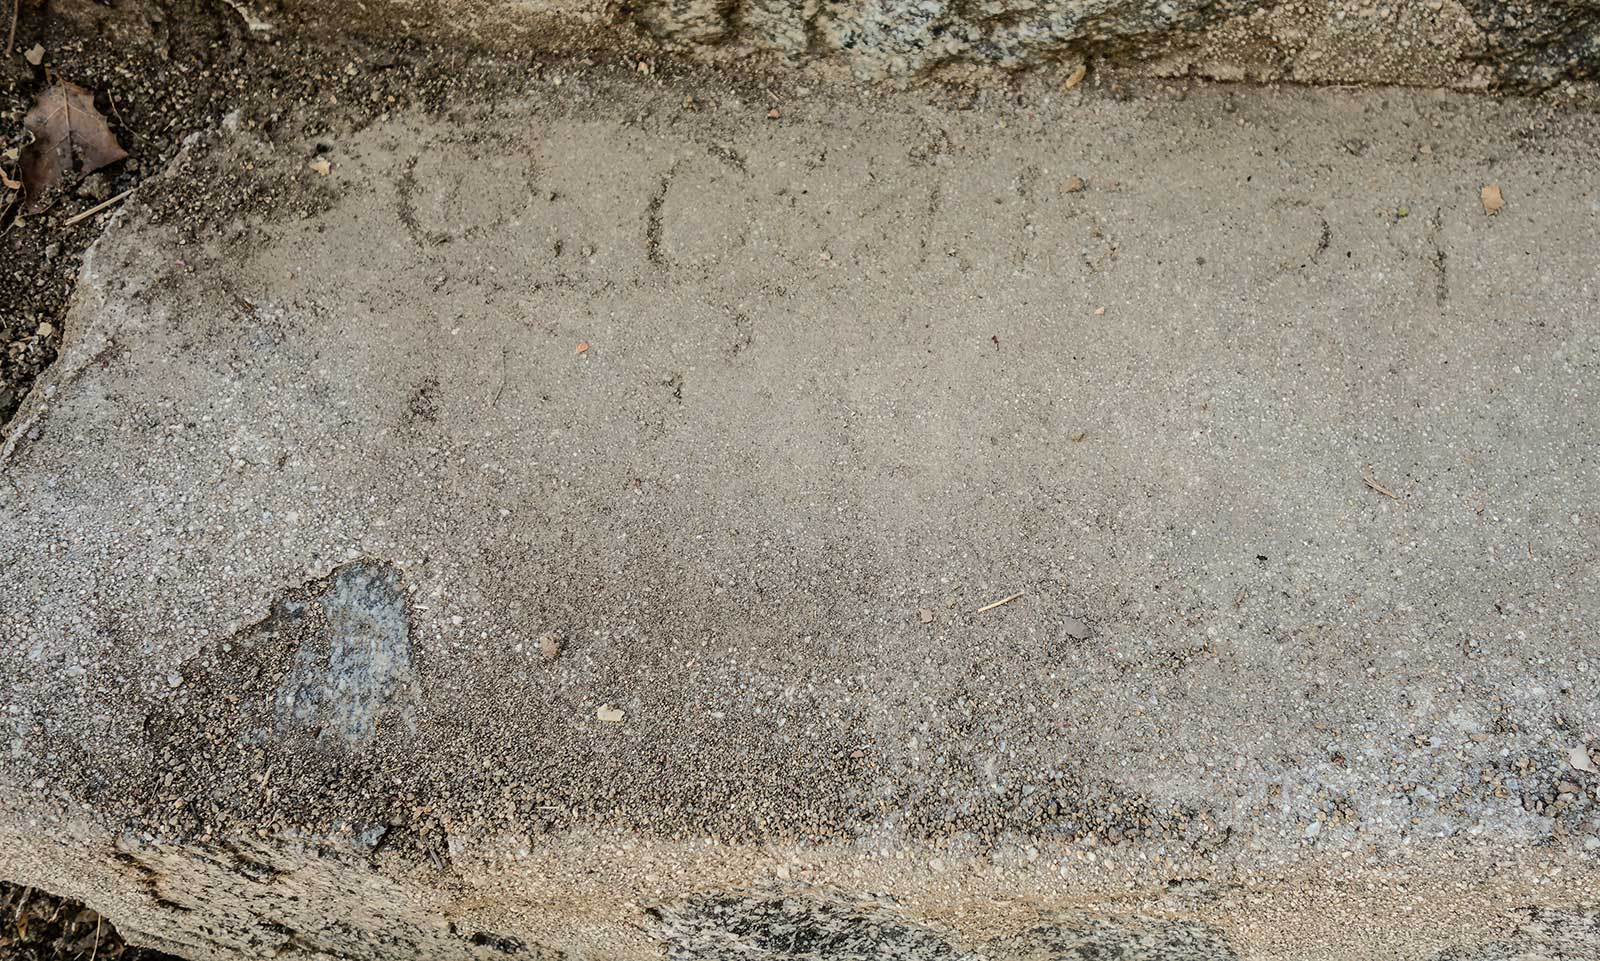 Discovered in the concret steps the date Oct. 15 1929